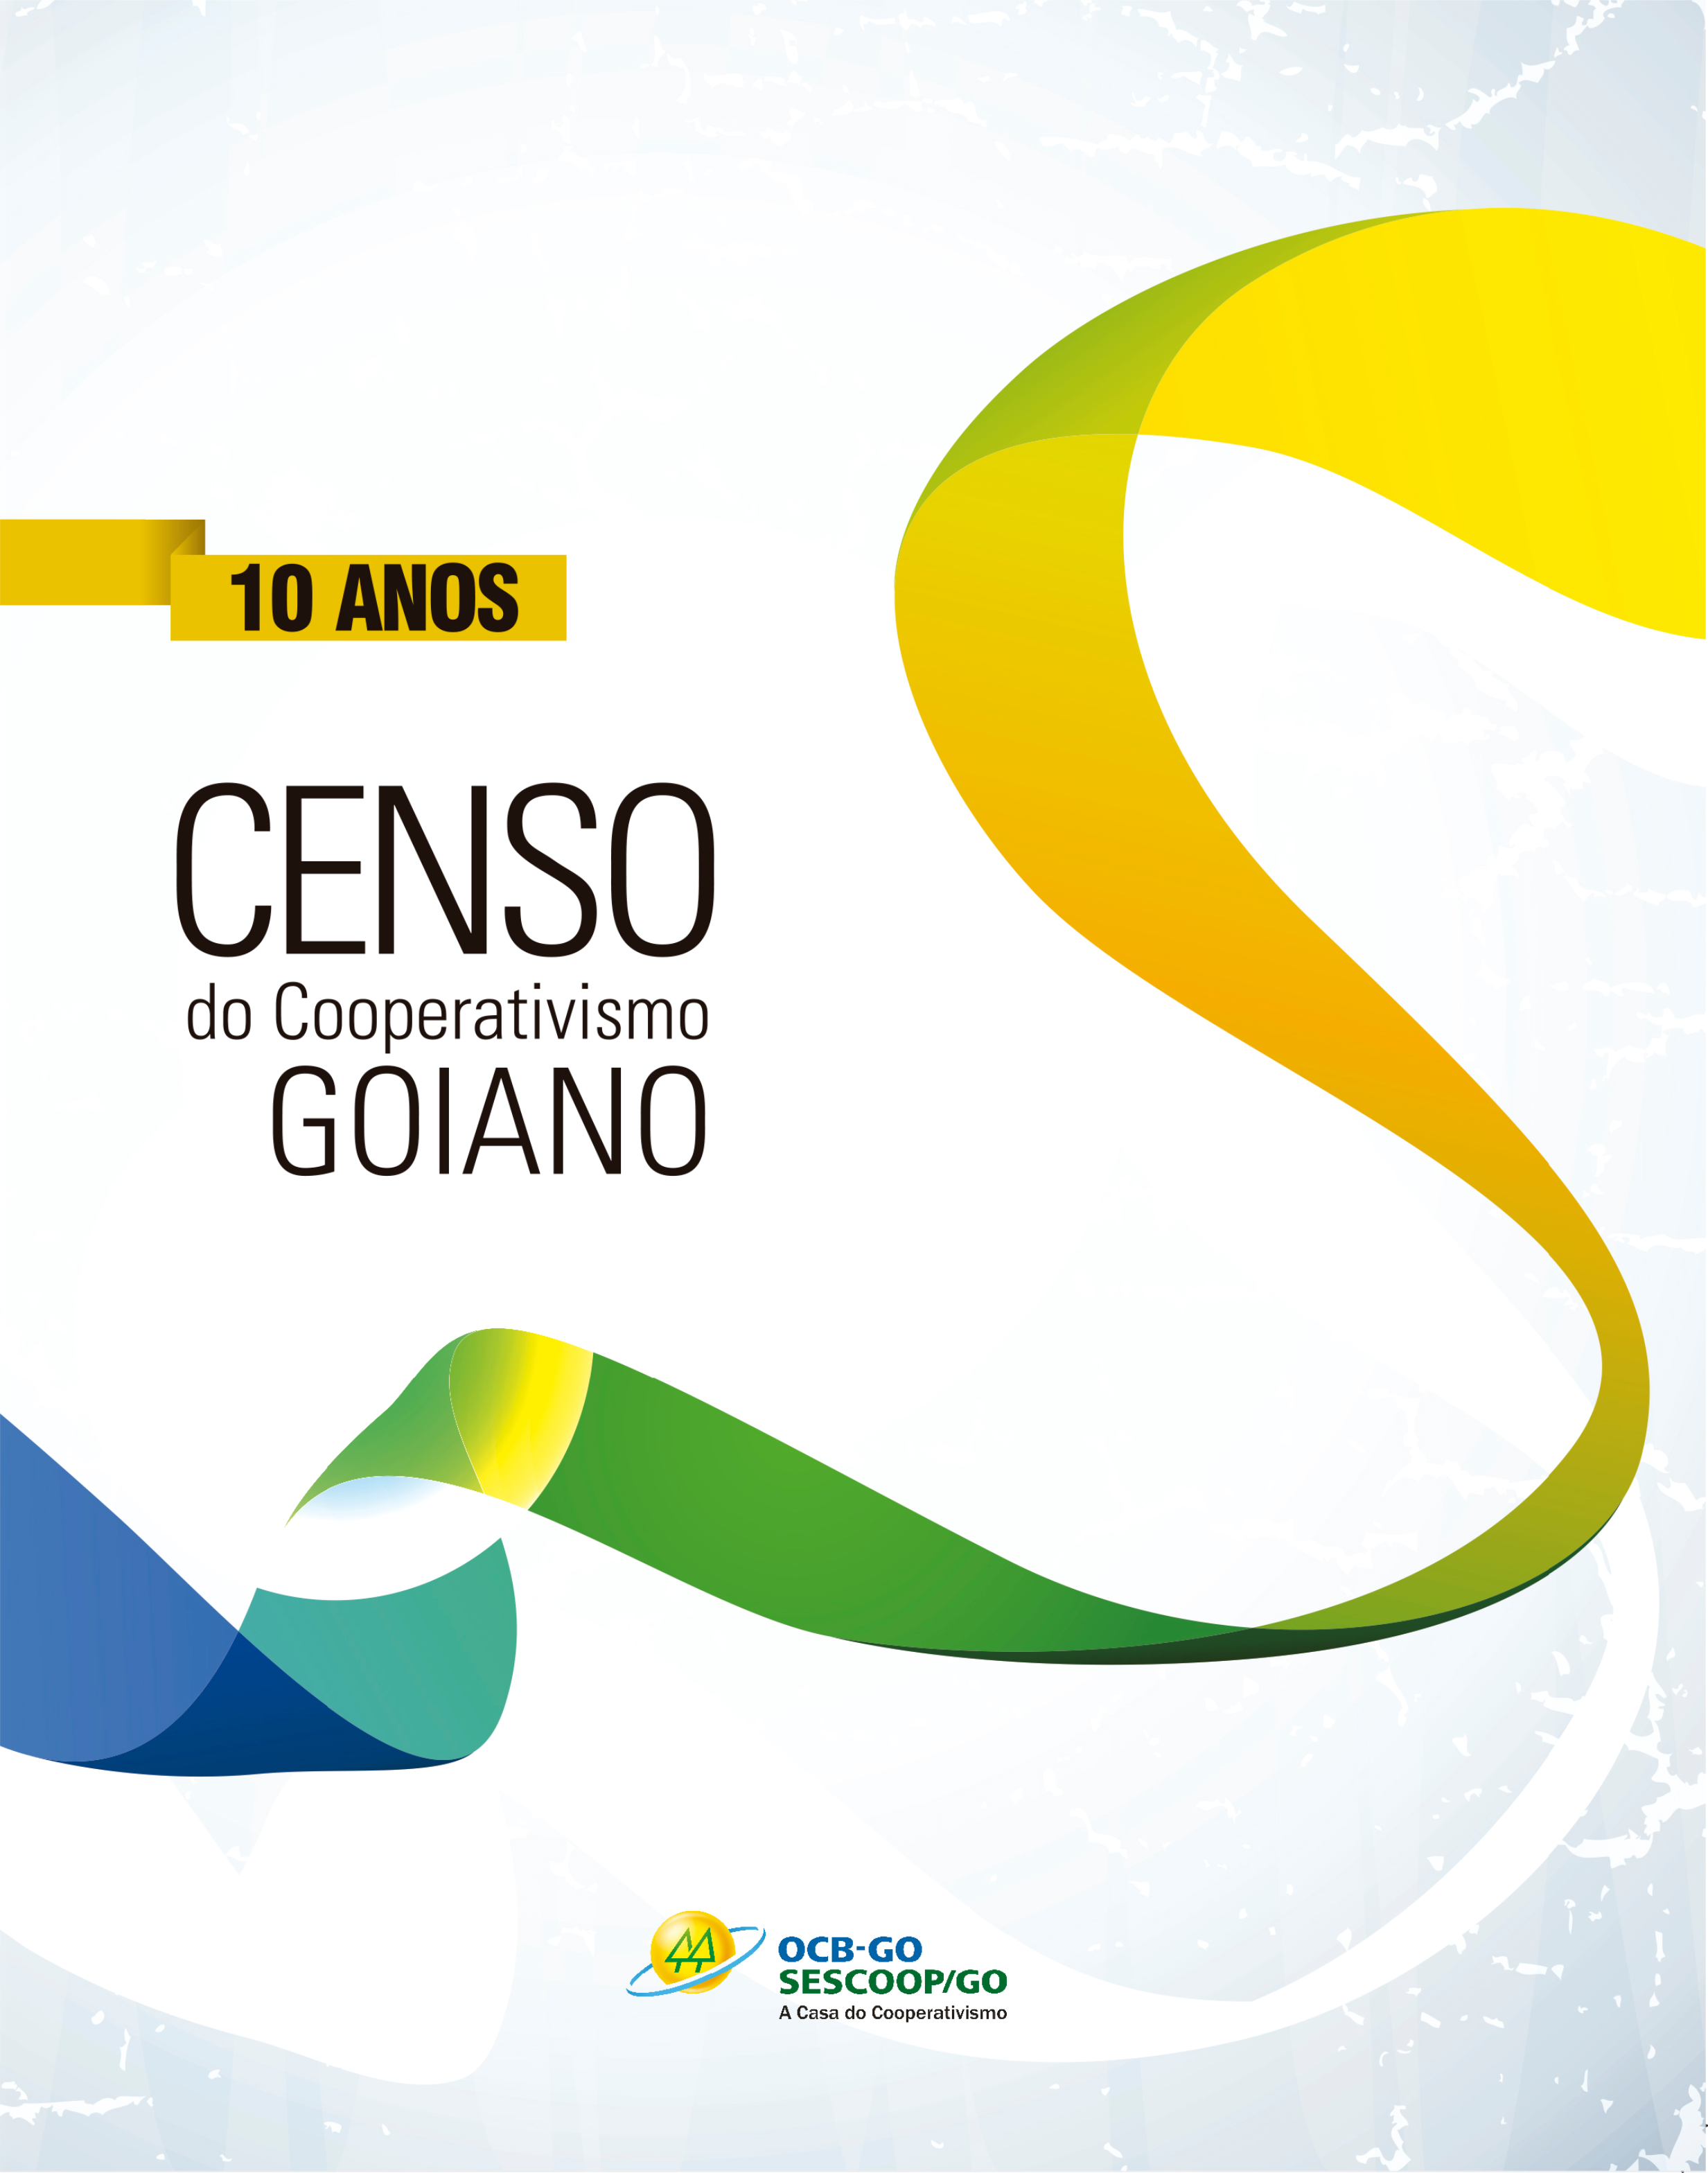 capa-poster-censo-2015-141111102.png